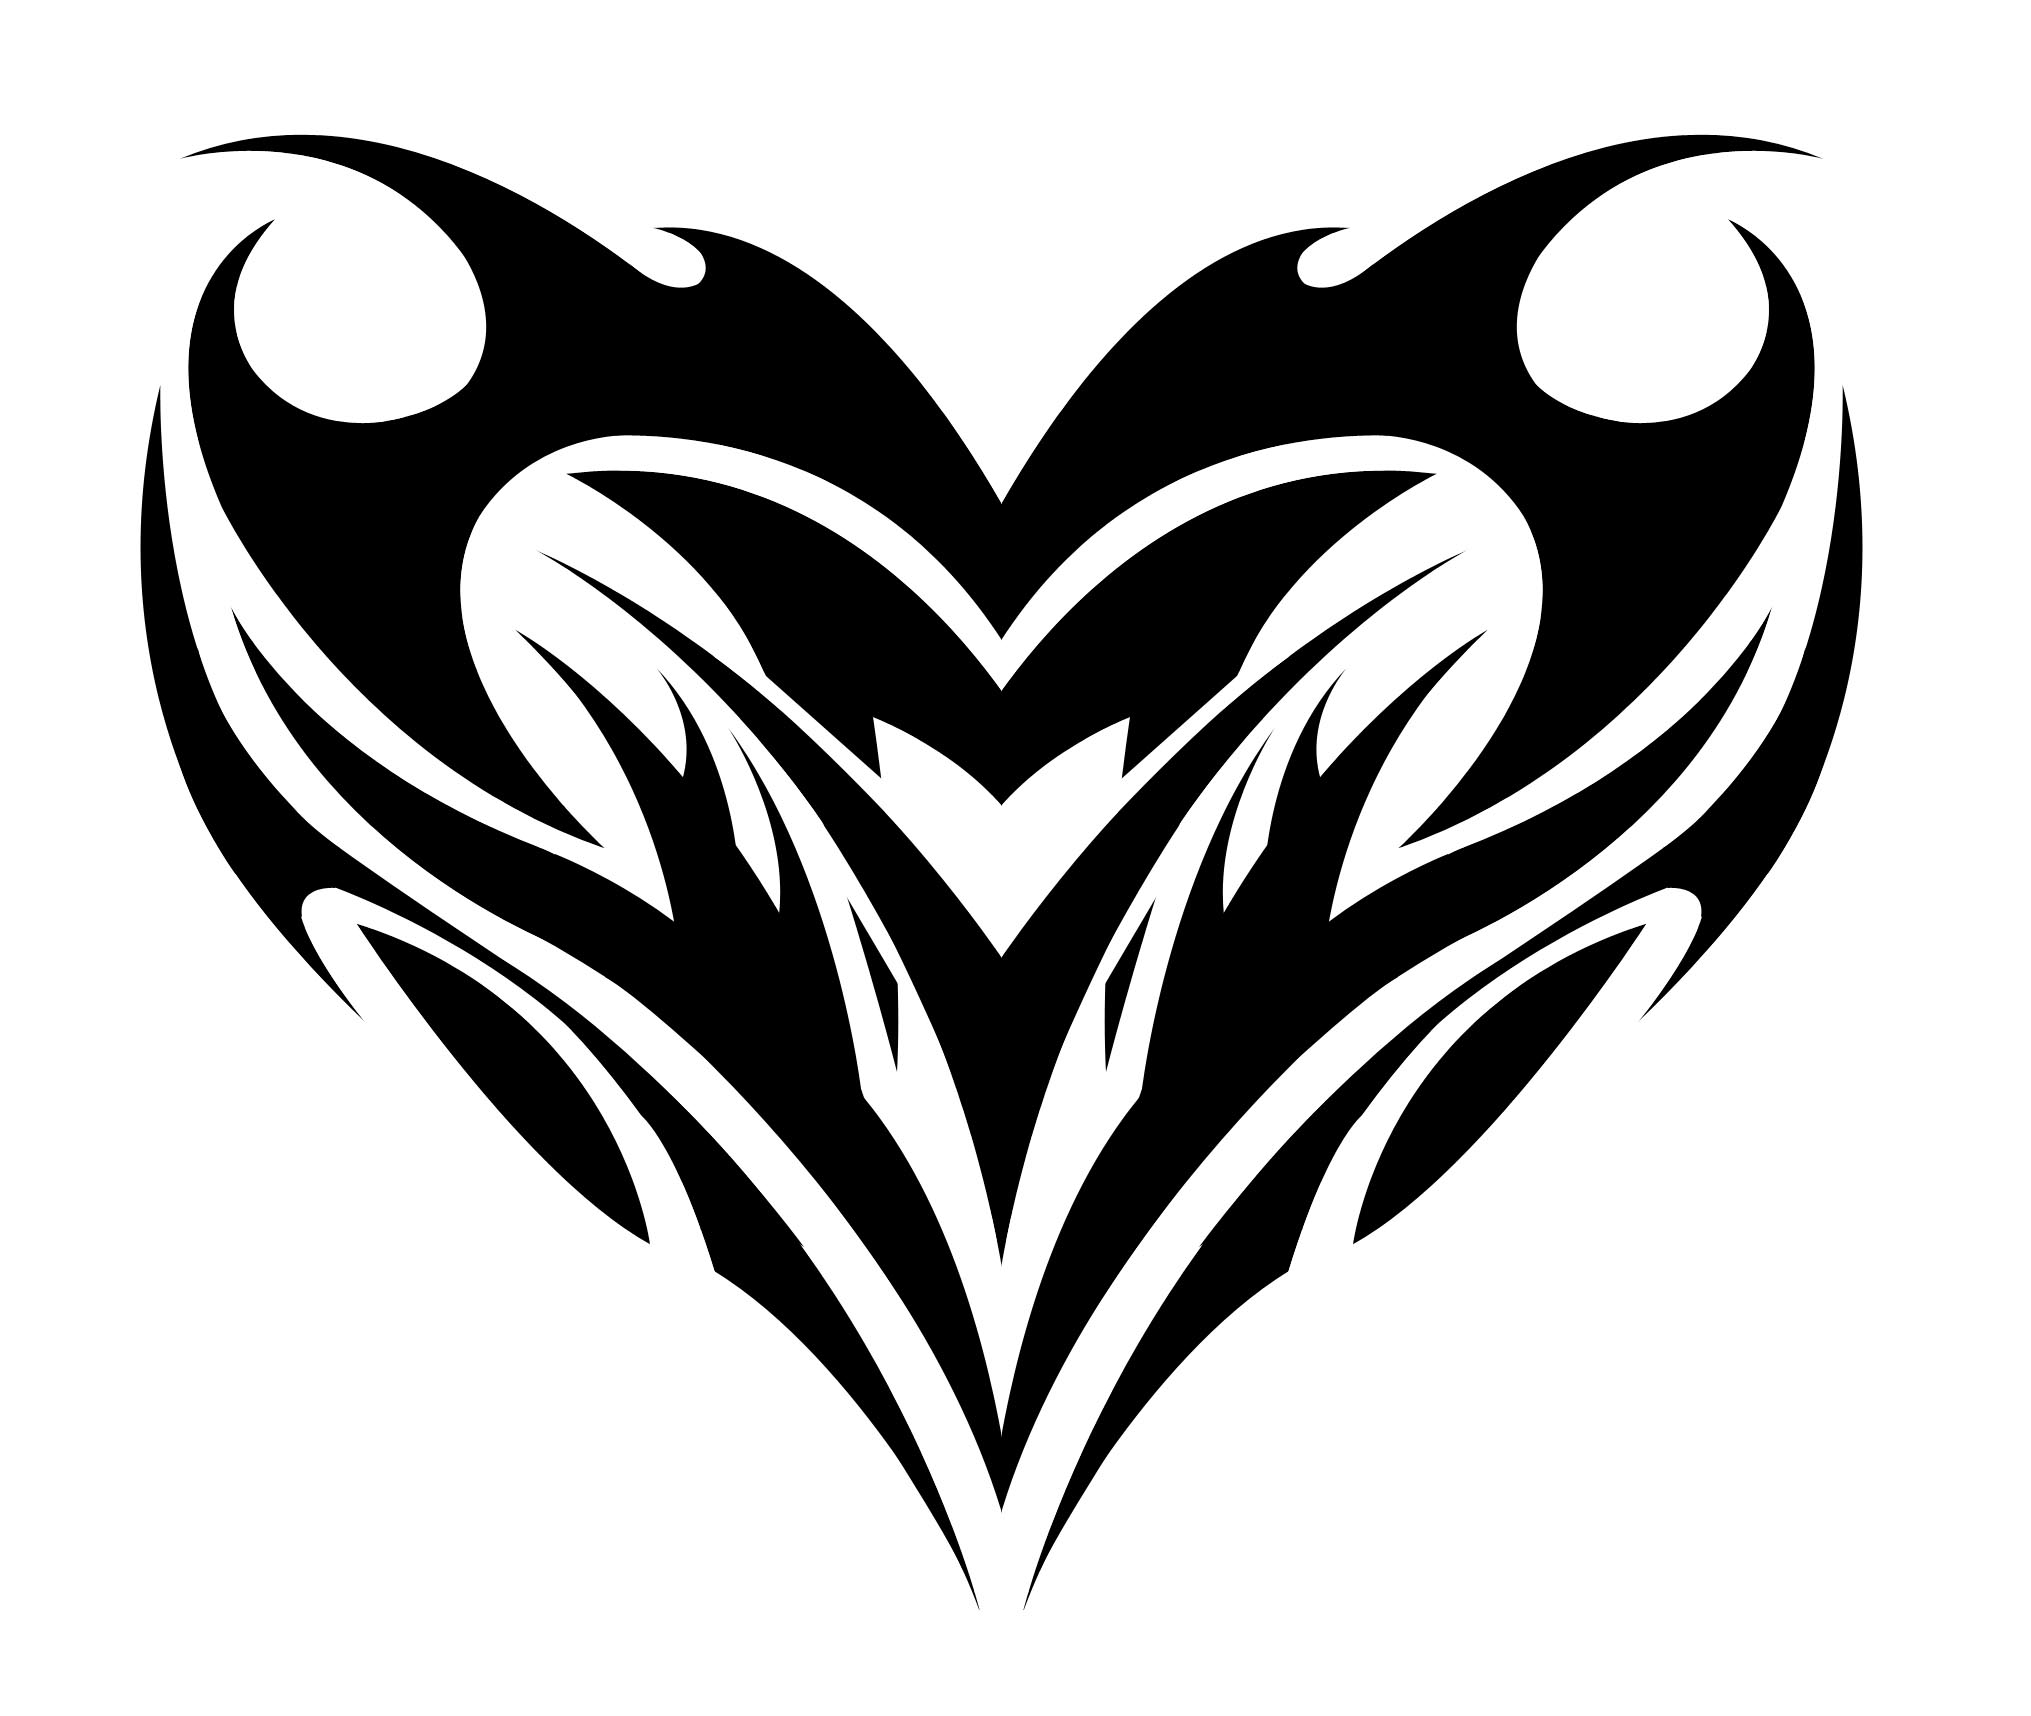 Cool heart designs to draw clipart best for Heartbeat design